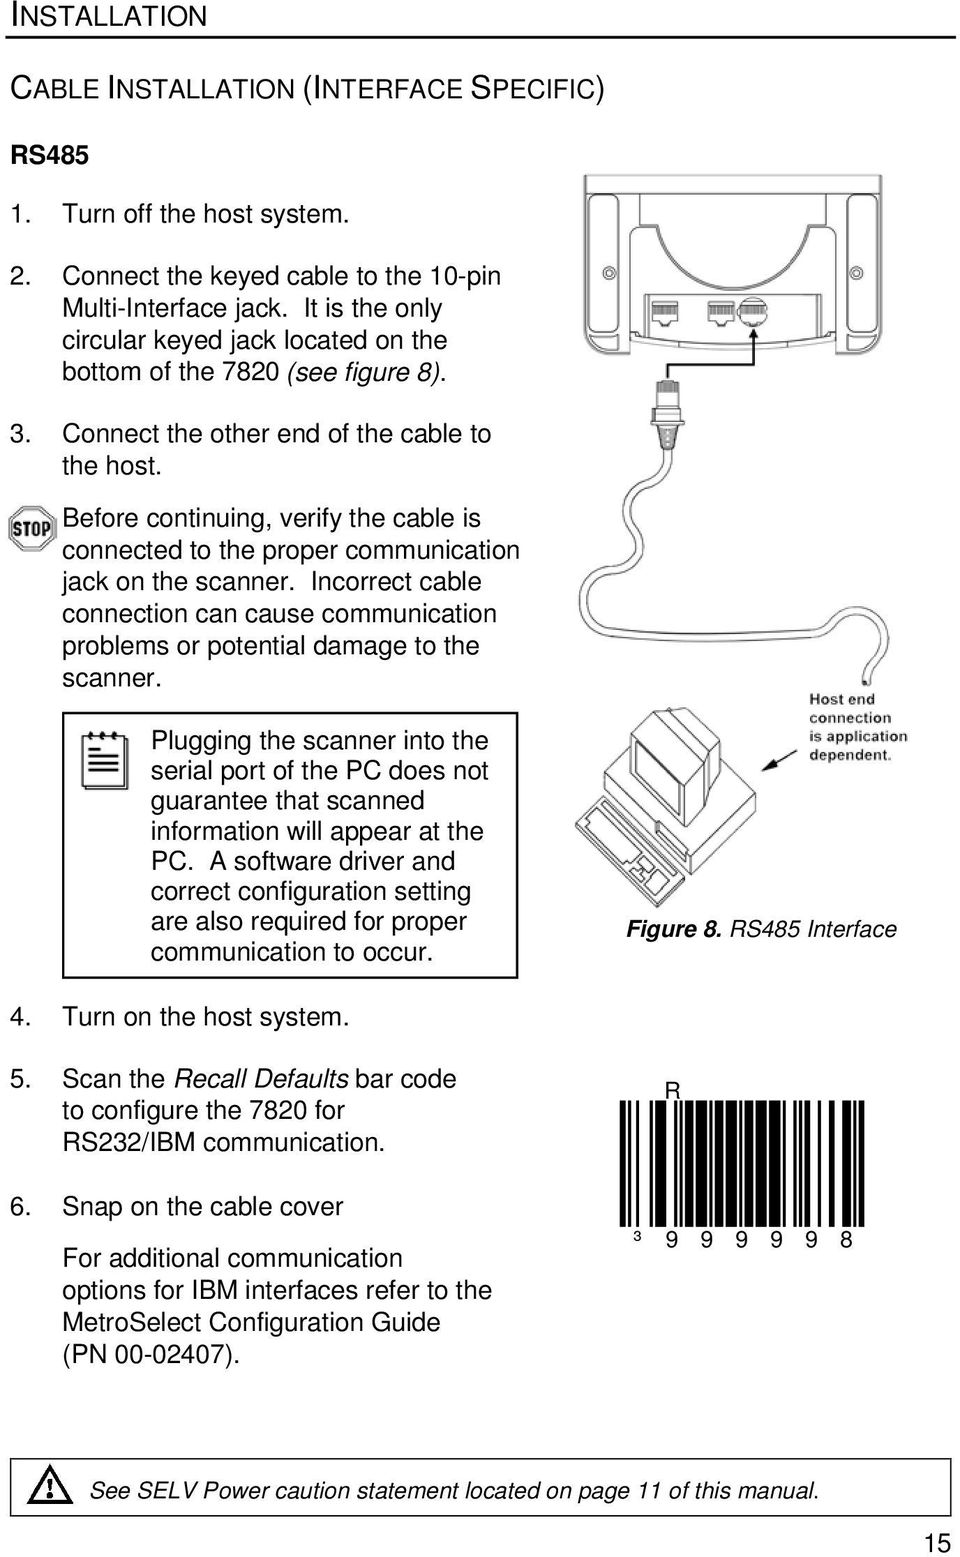 Before continuing, verify the cable is connected to the proper communication jack on the scanner. Incorrect cable connection can cause communication problems or potential damage to the scanner.